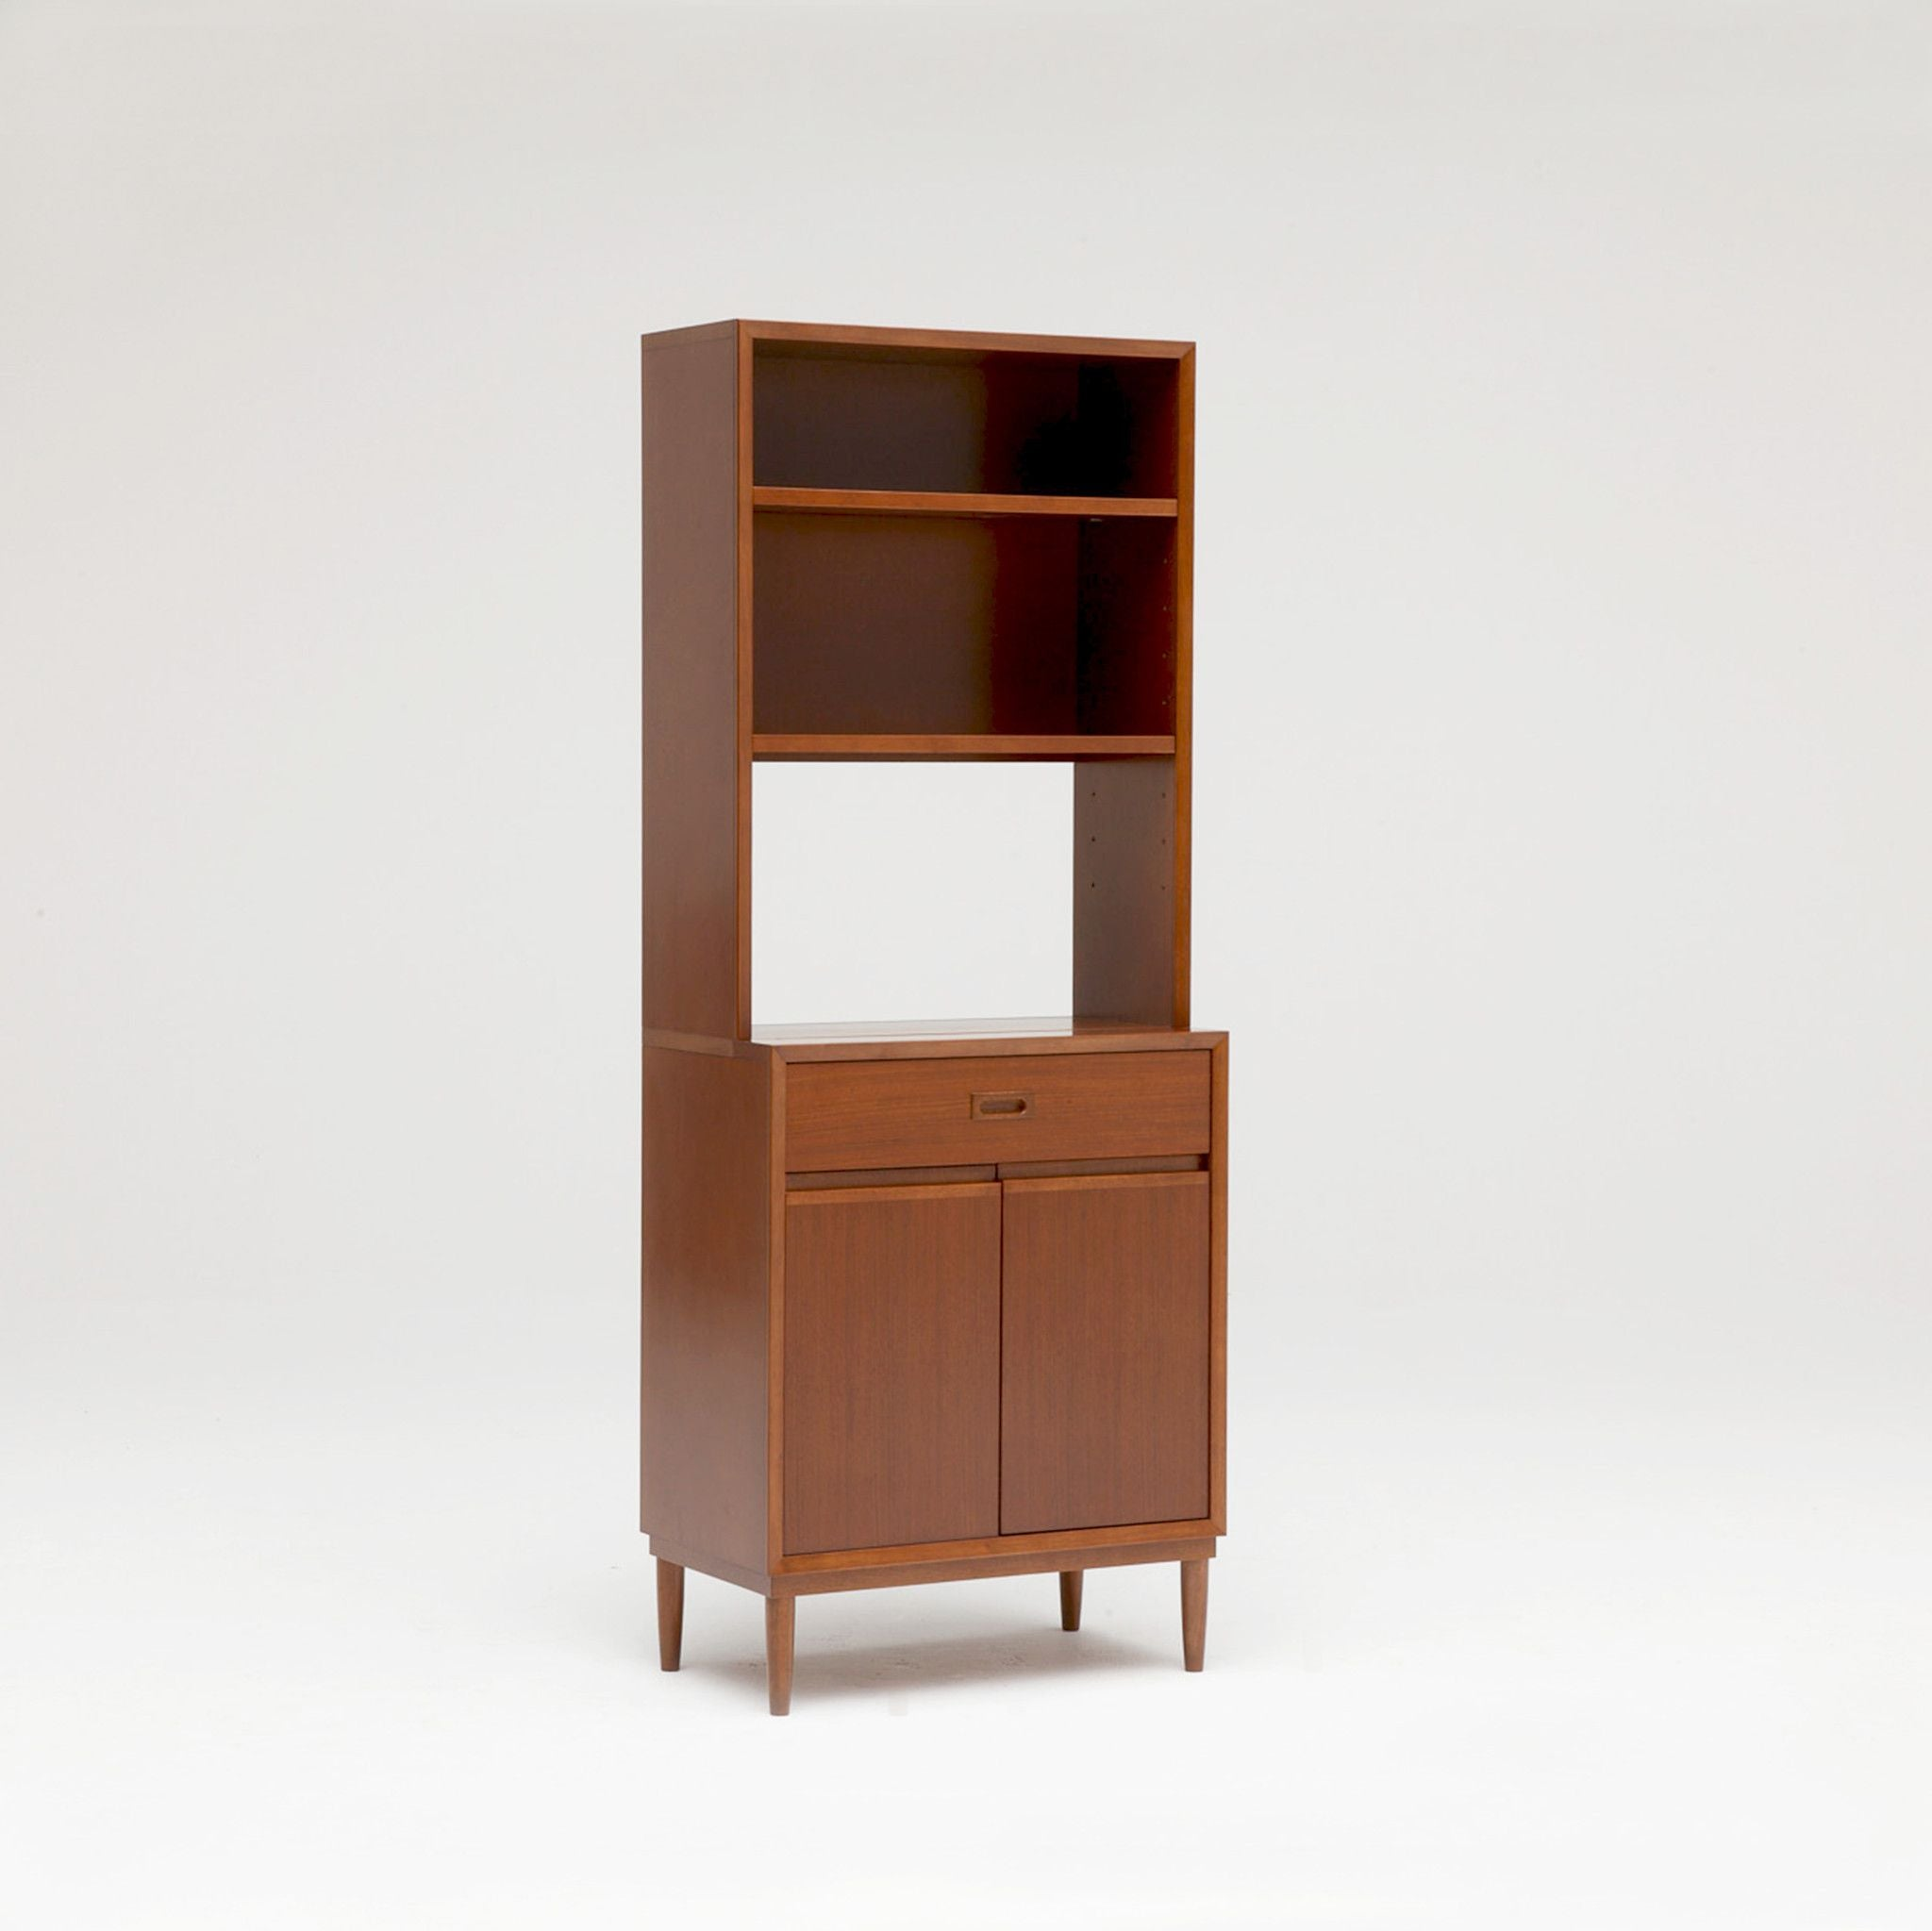 Open top cabinet out of stock